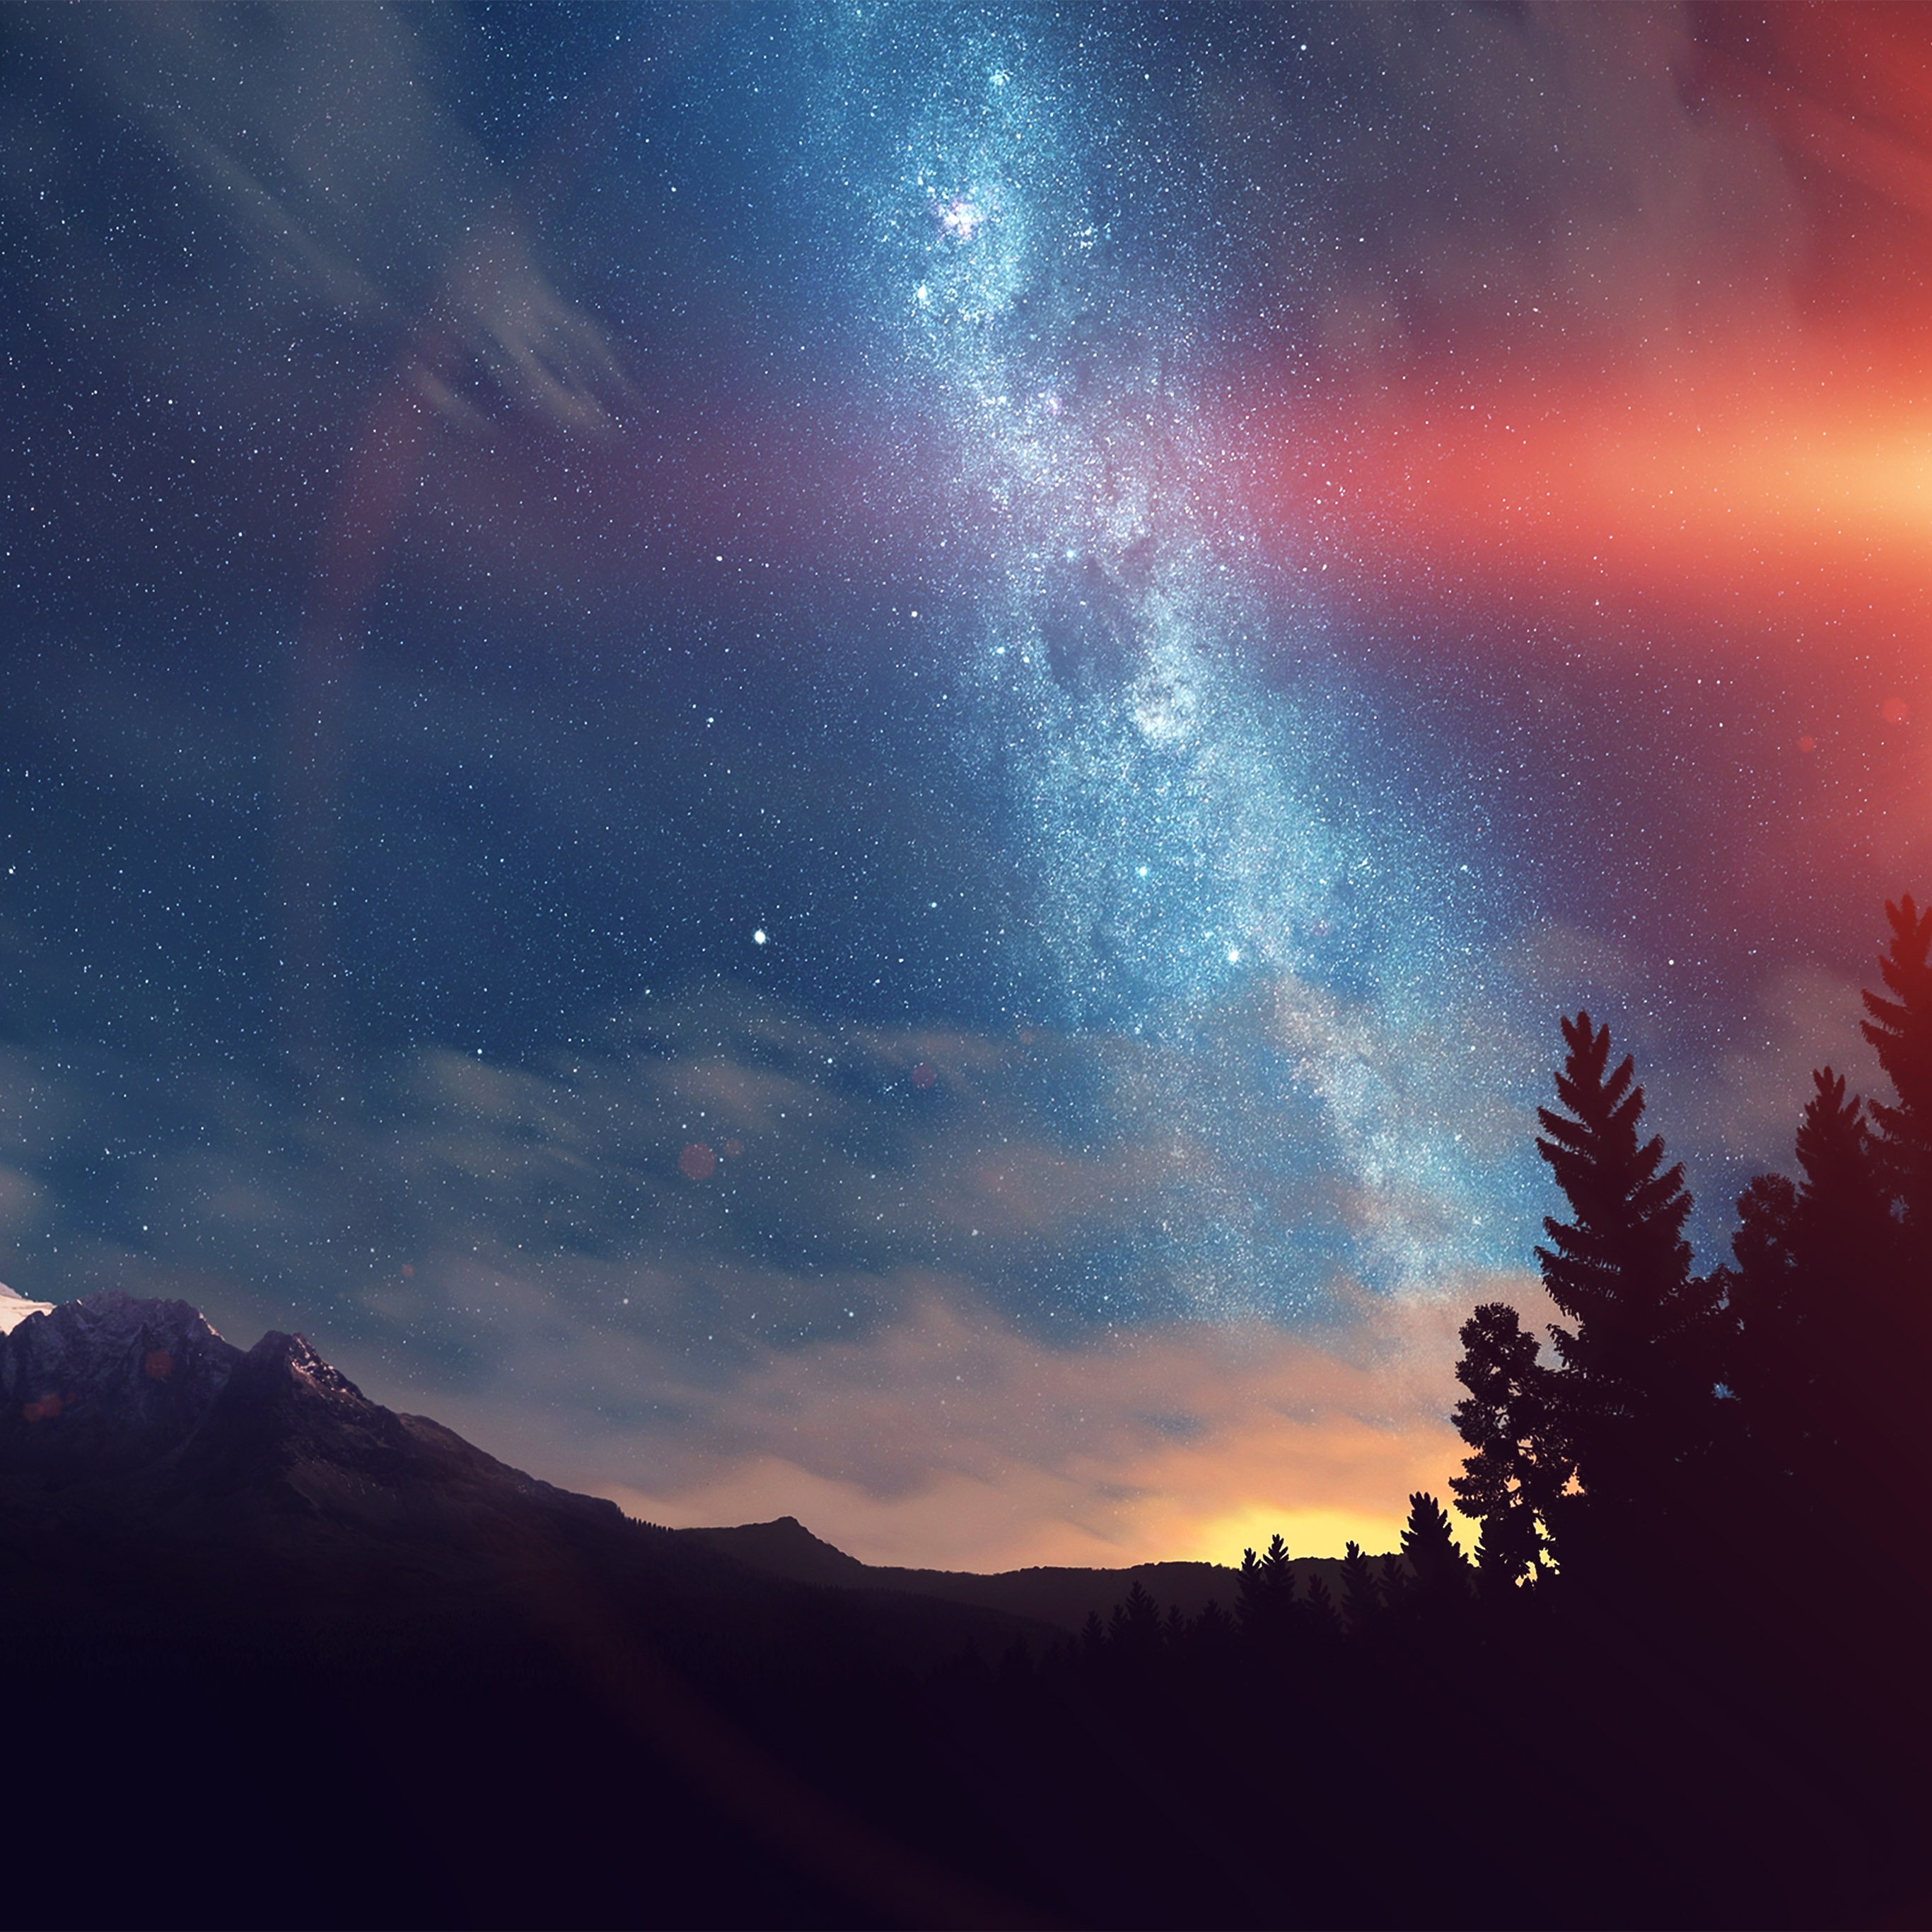 Galaxy S4 Fall Wallpaper Papers Co Android Wallpaper Nd08 Wonderful Tonight